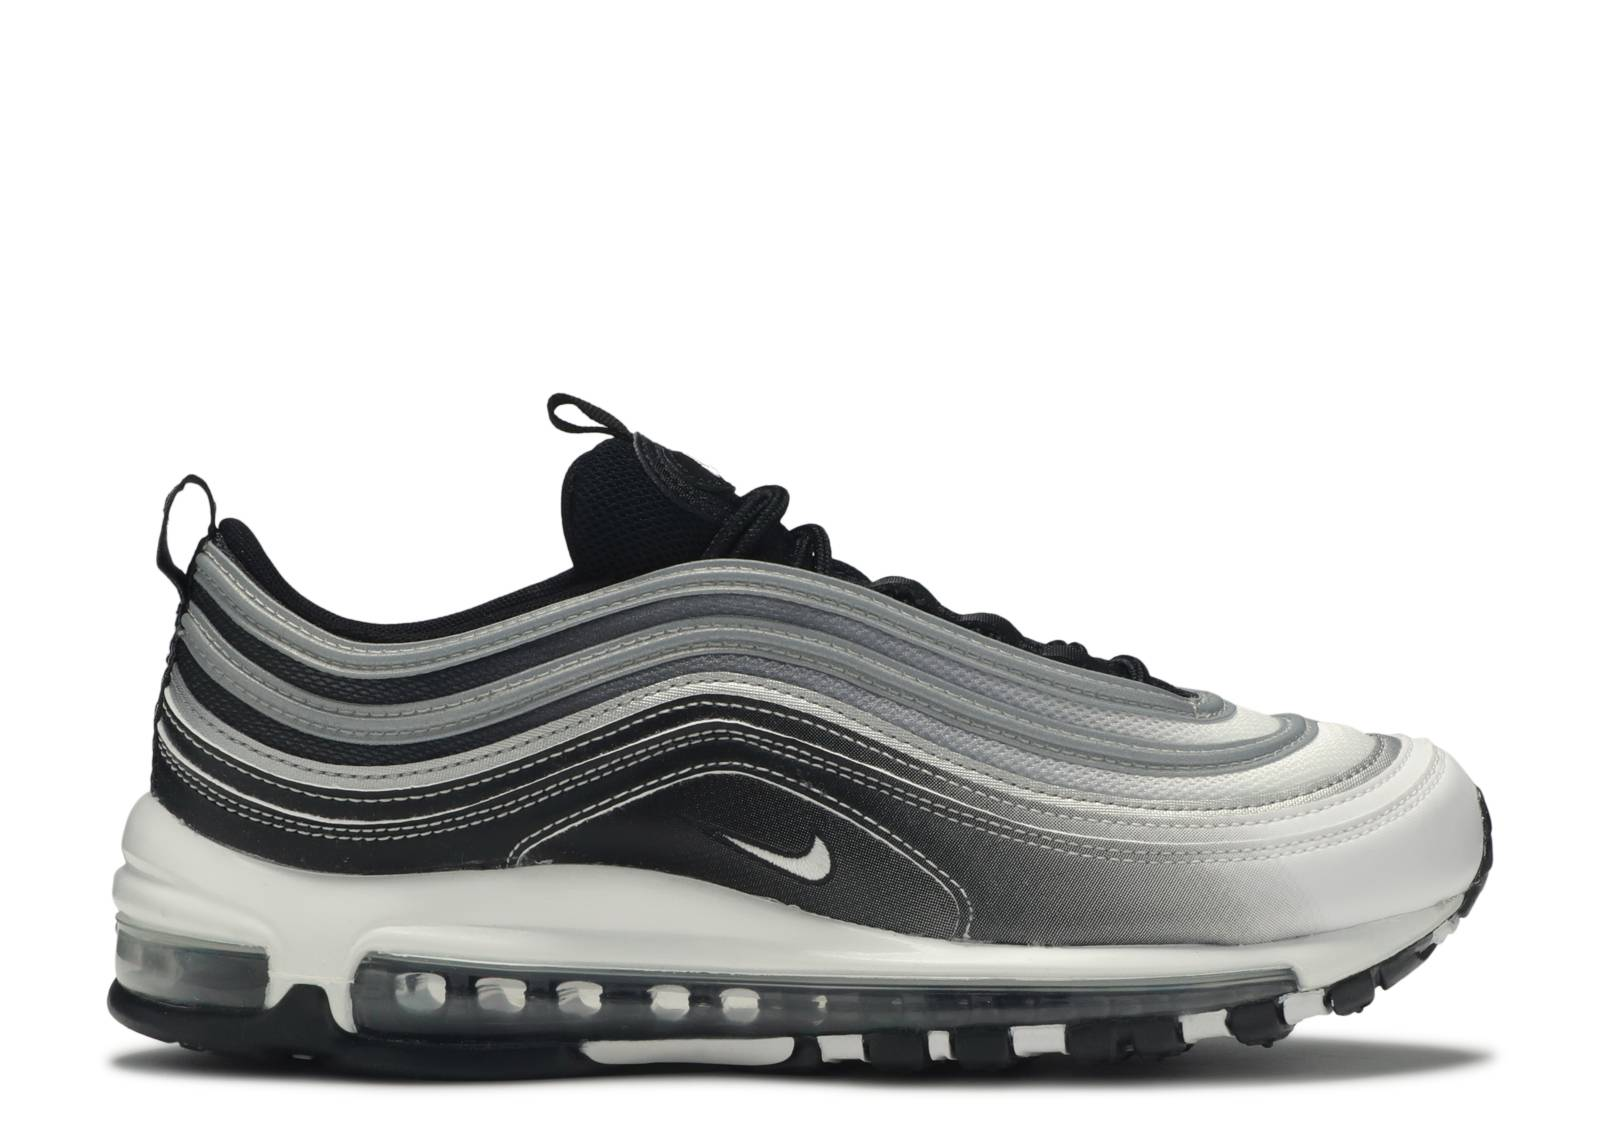 Air Max 97 Reflective Silver Nike 921826 016 Black Black